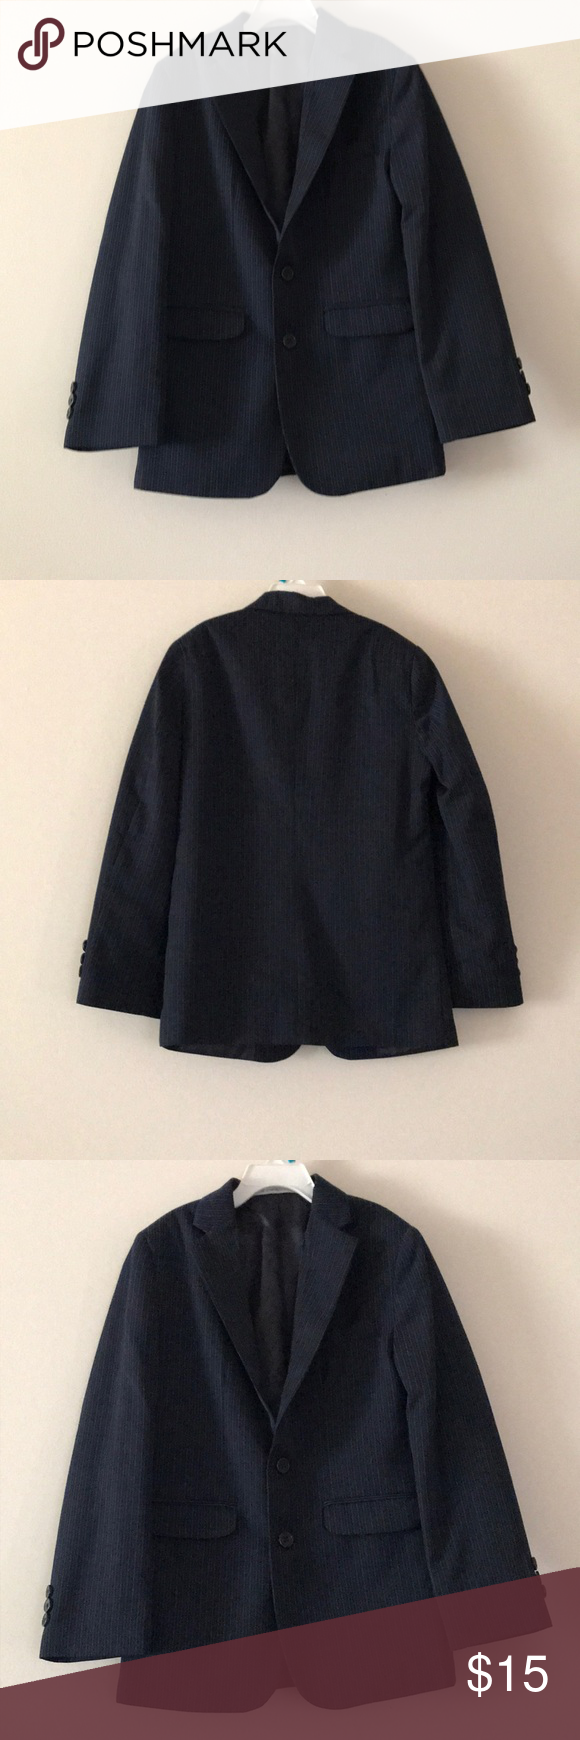 64ccb67ea8dd Perry Ellis Boys Blazer Perry Ellis Boys Navy Blue